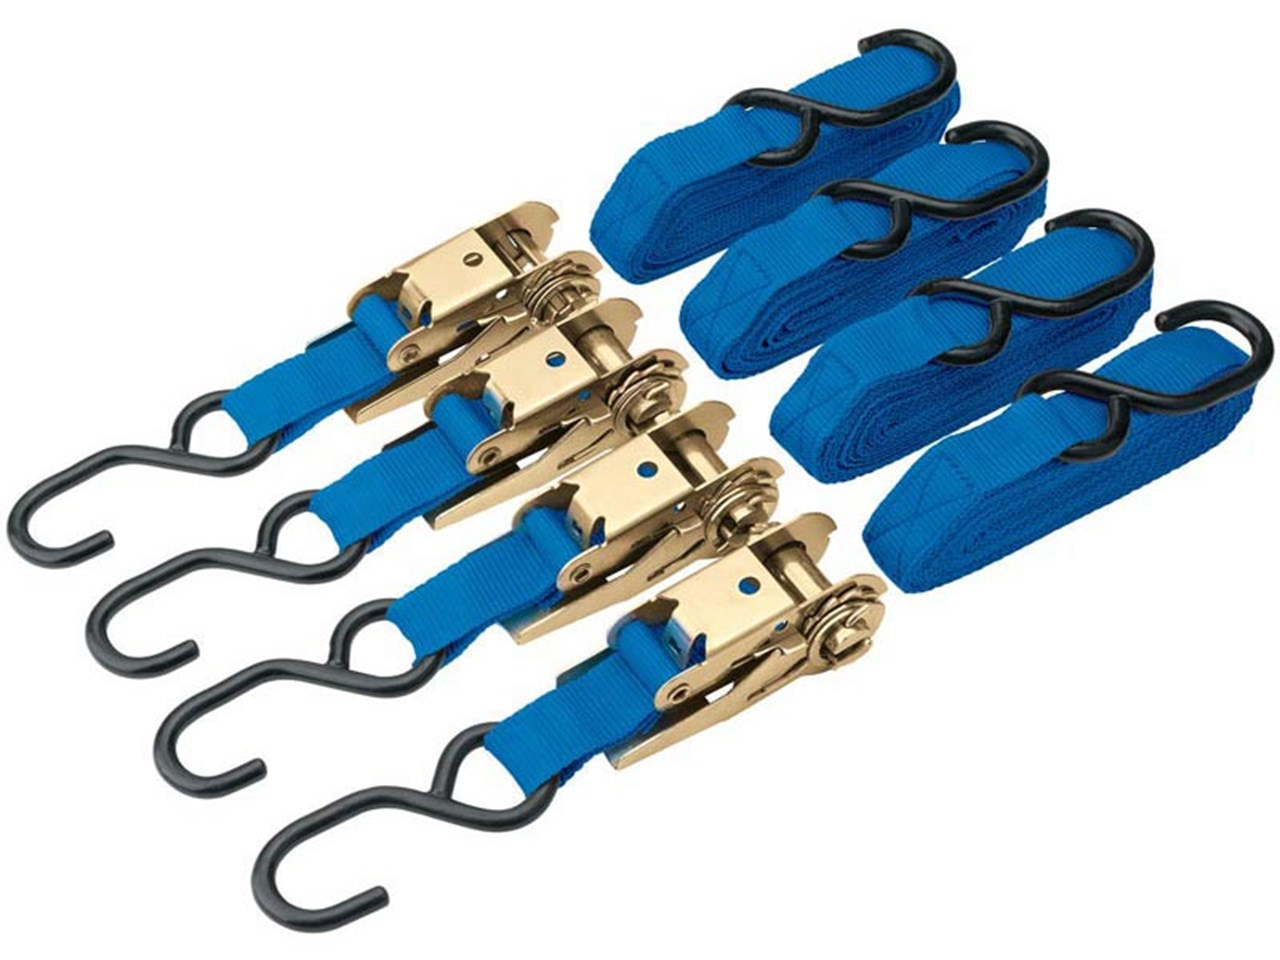 375kg Ratcheting Tie Down Strap Set (4 Piece) – Now Only £14.00